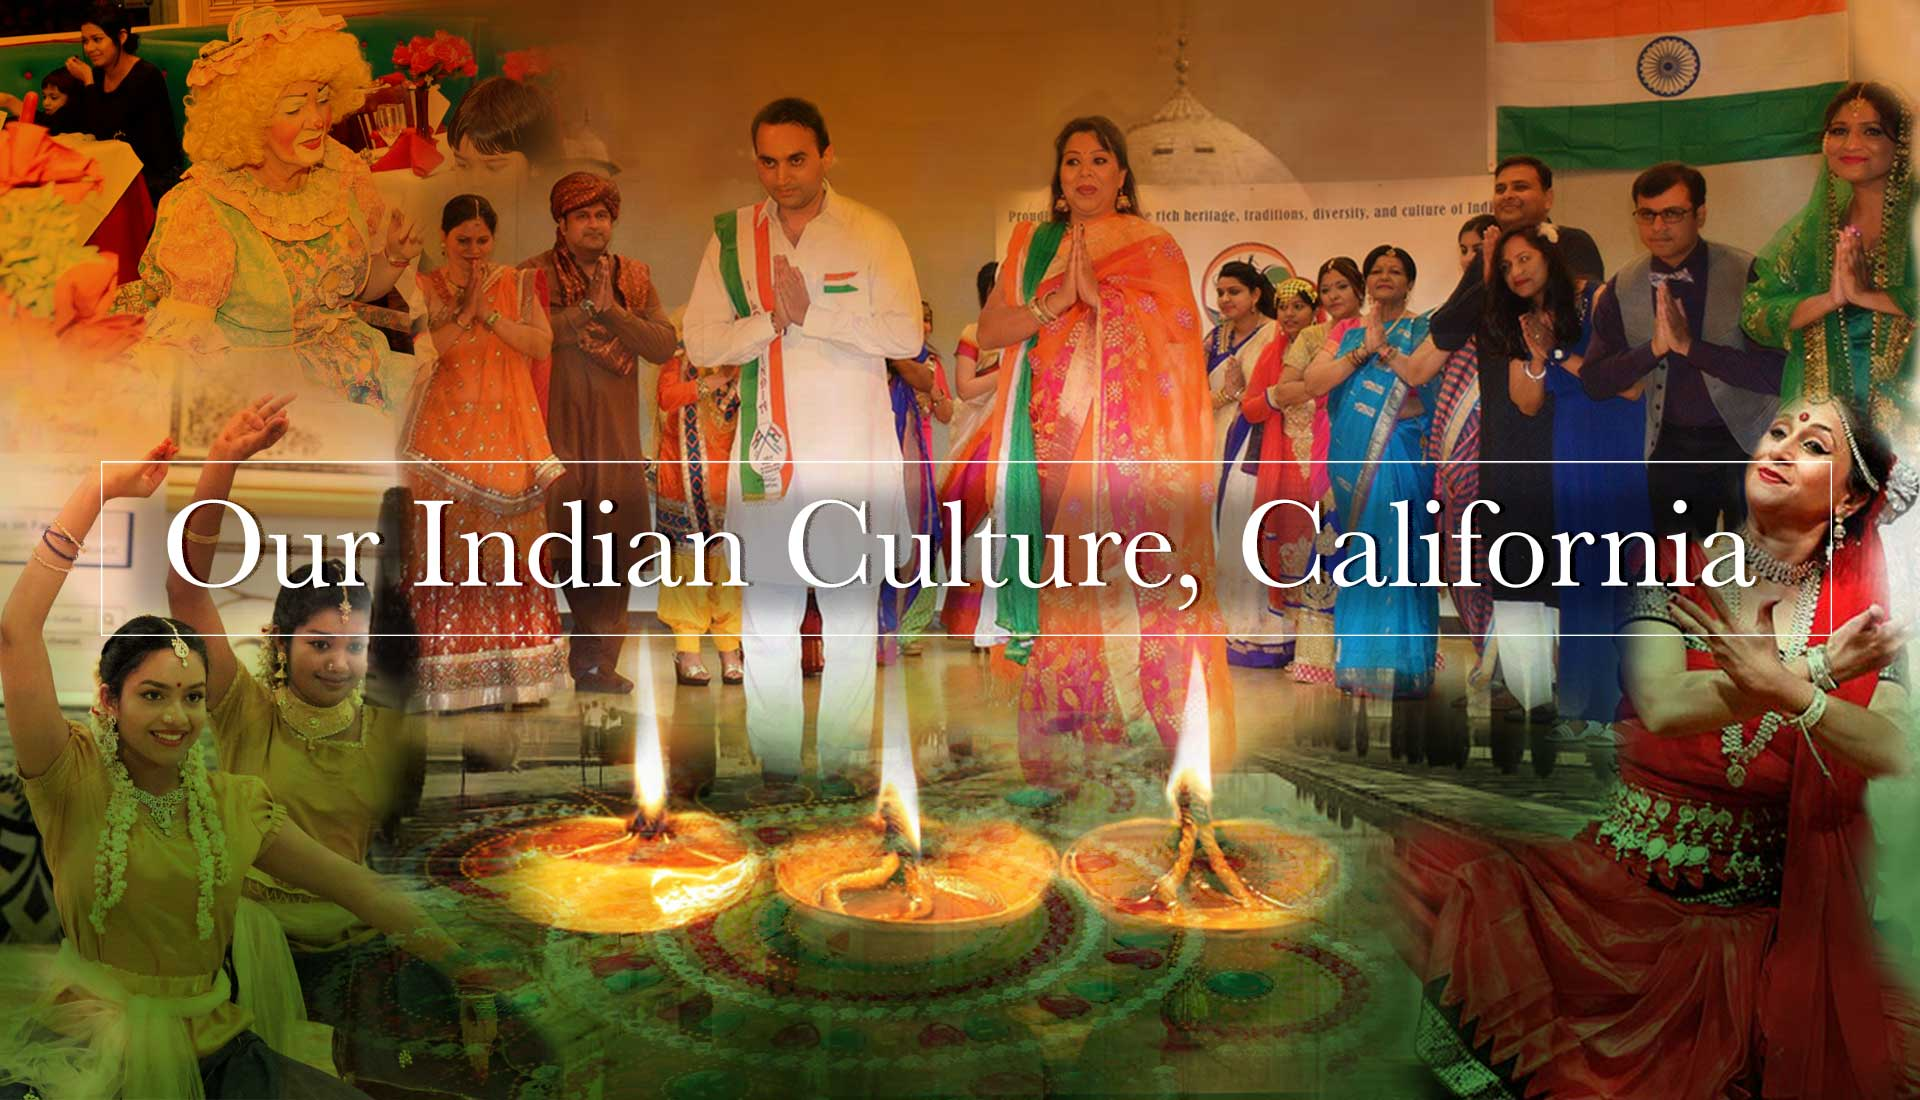 Our Indian Culture, based in Irvine California USA, organizes various Indian events